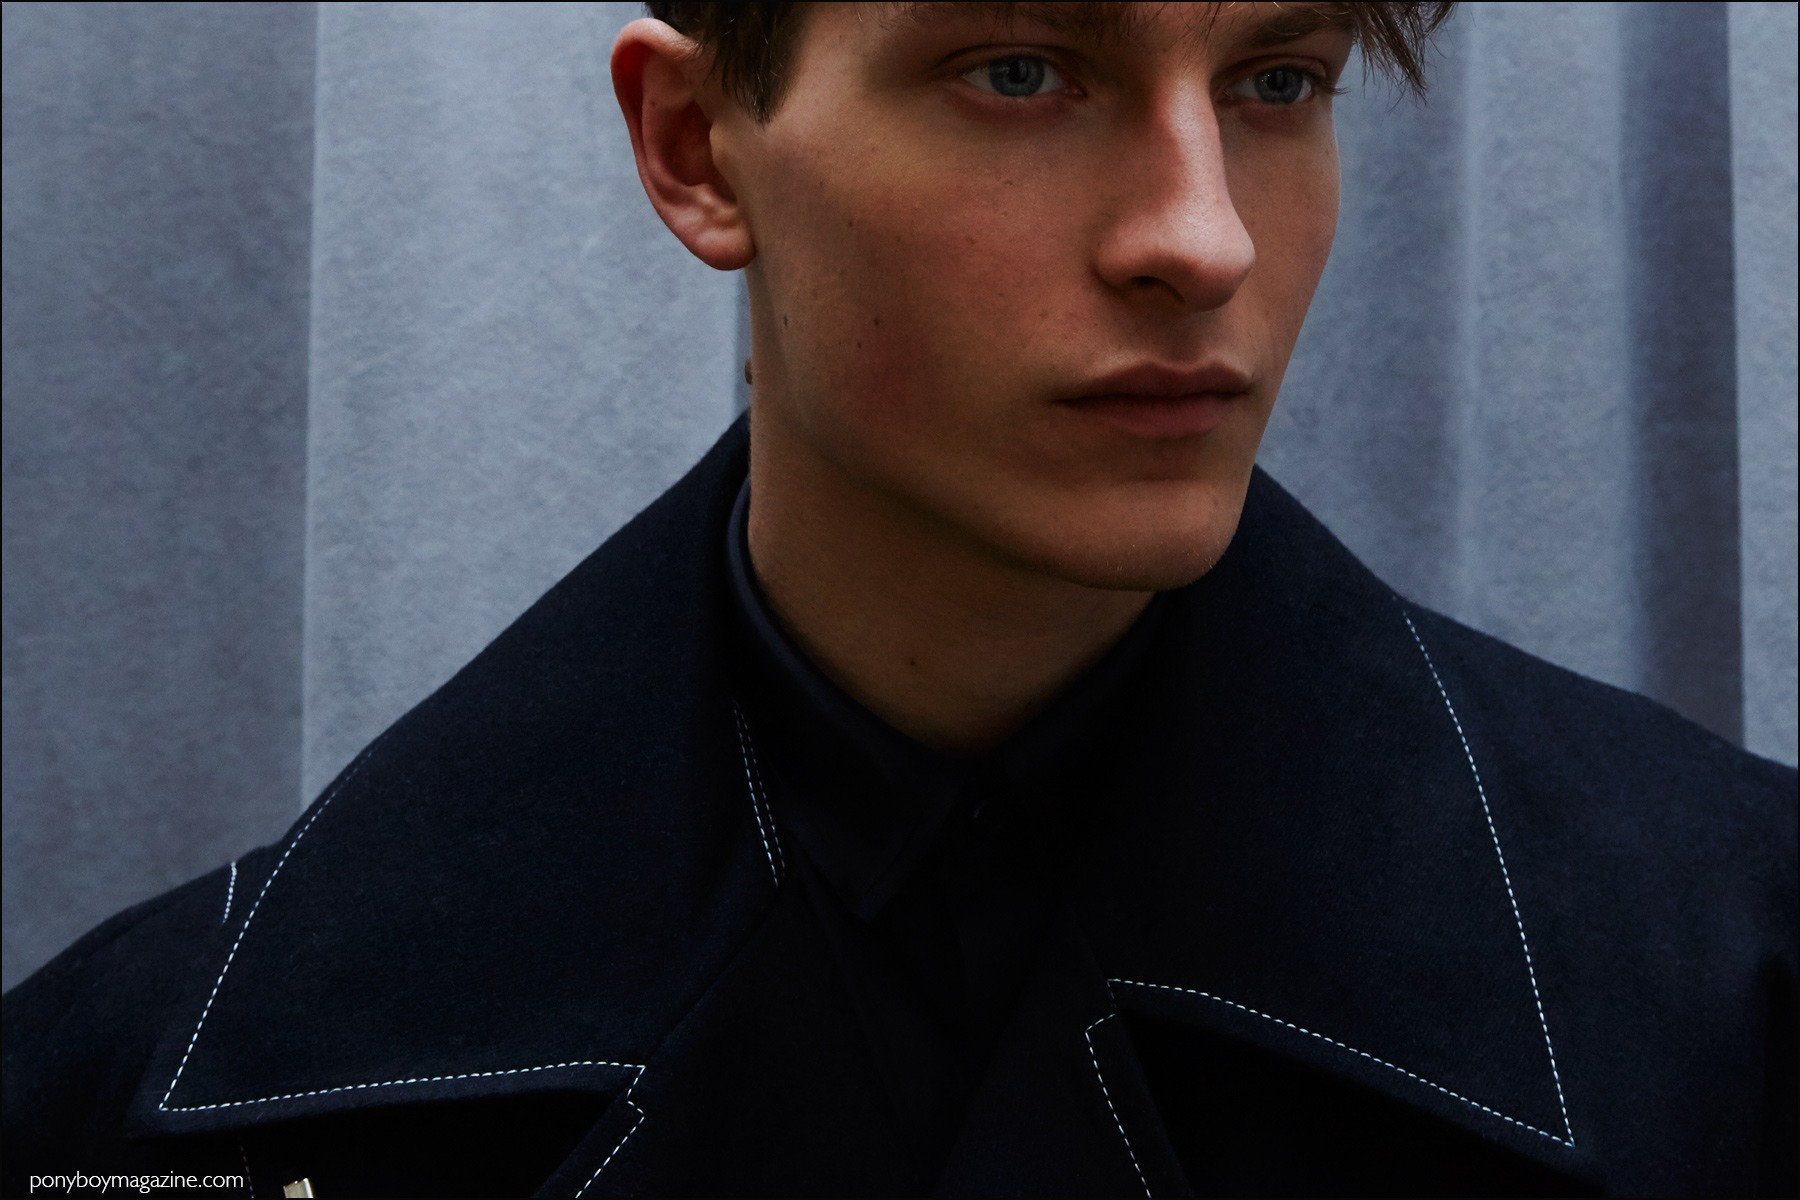 Male model Dmitry Brylev photographed backstage at Kenneth Ning F/W16 menswear show by Alexander Thompson for Ponyboy magazine NY.